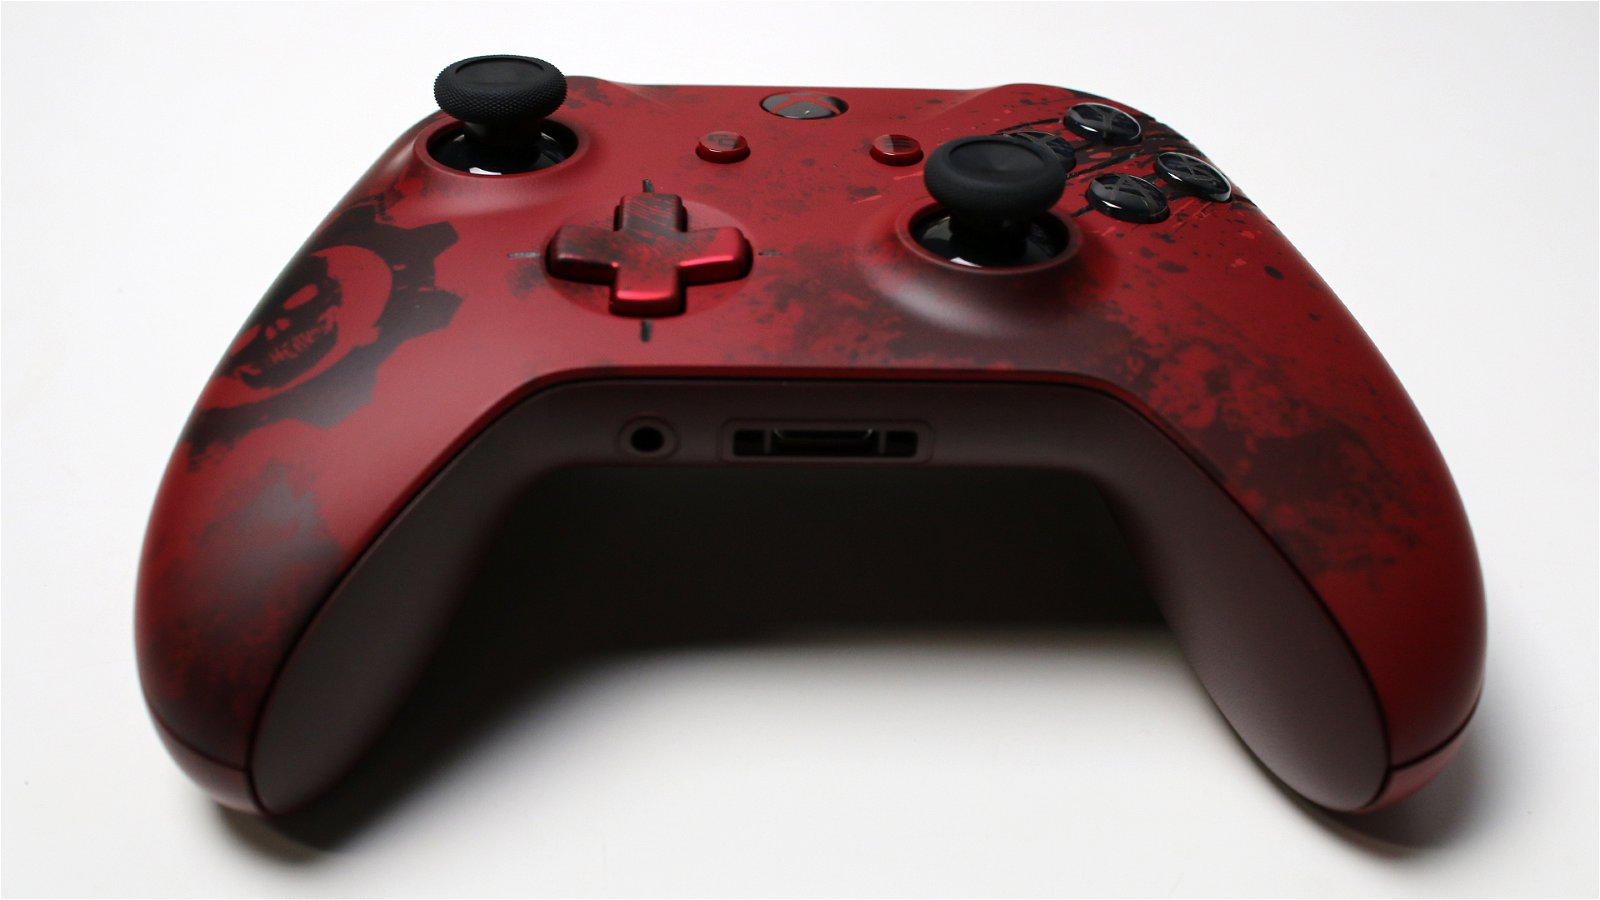 Unboxing the Gears of War 4 Xbox One S 11